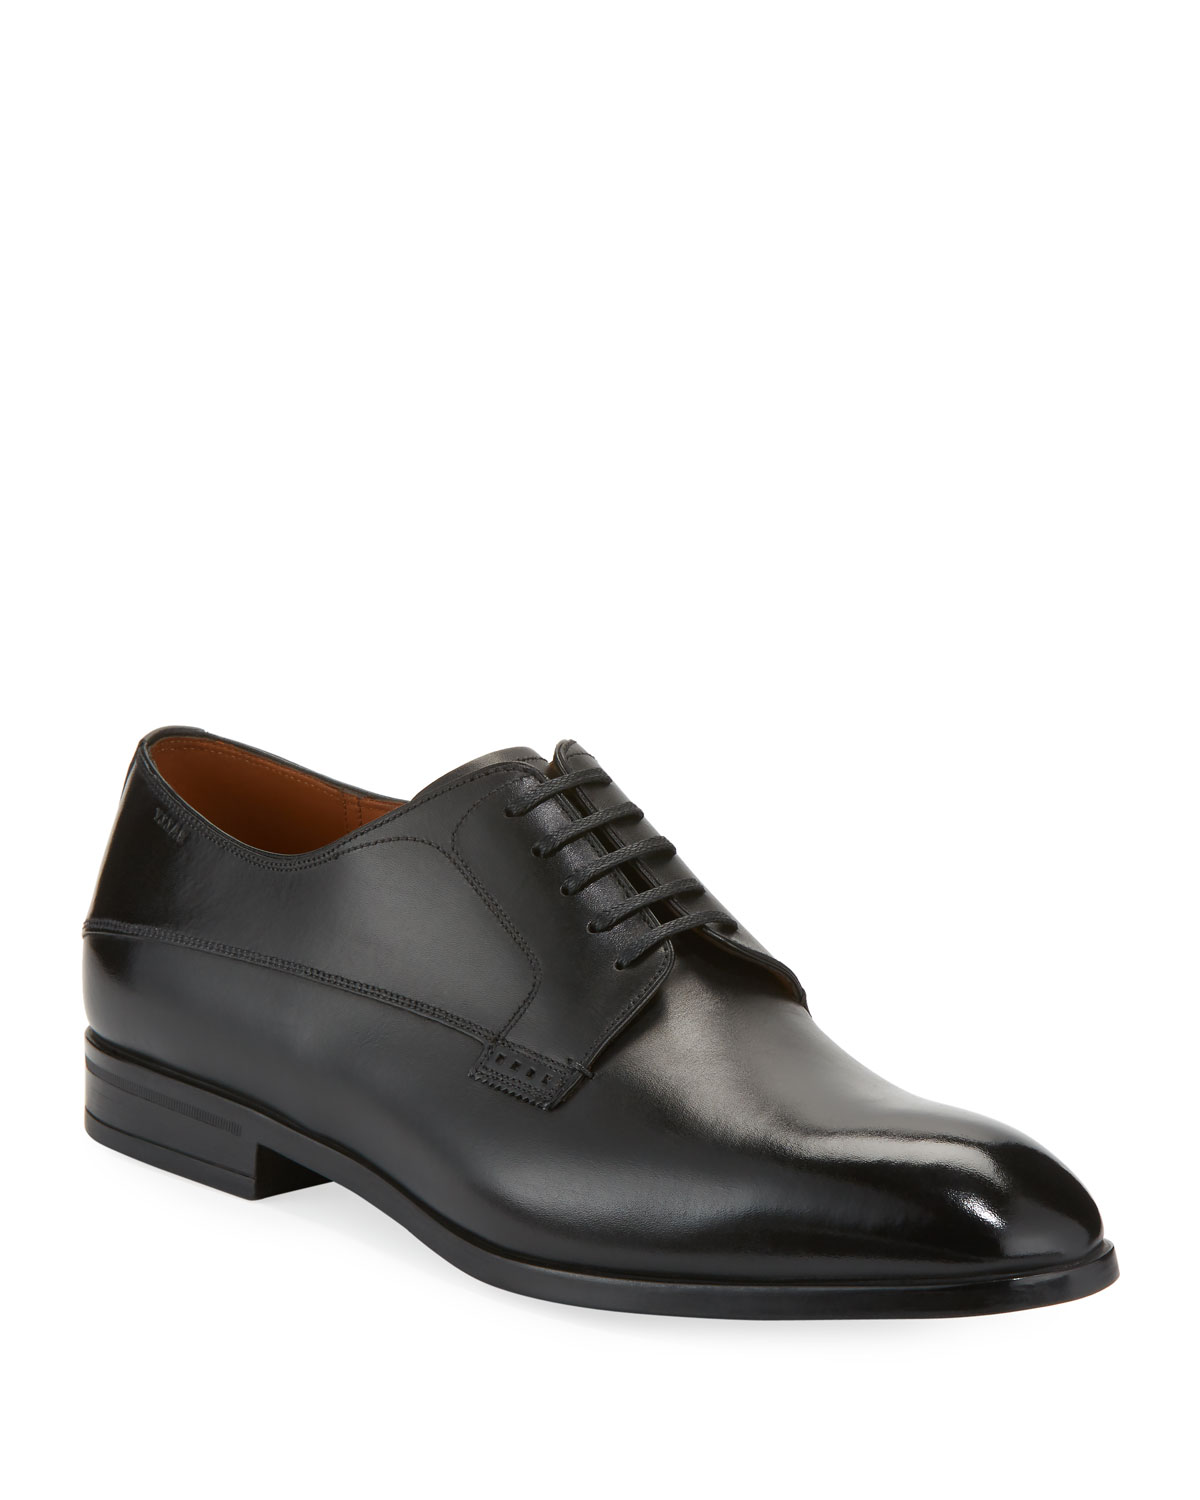 dcb7ead6c9bef Lantel Classic Leather Derby Shoe